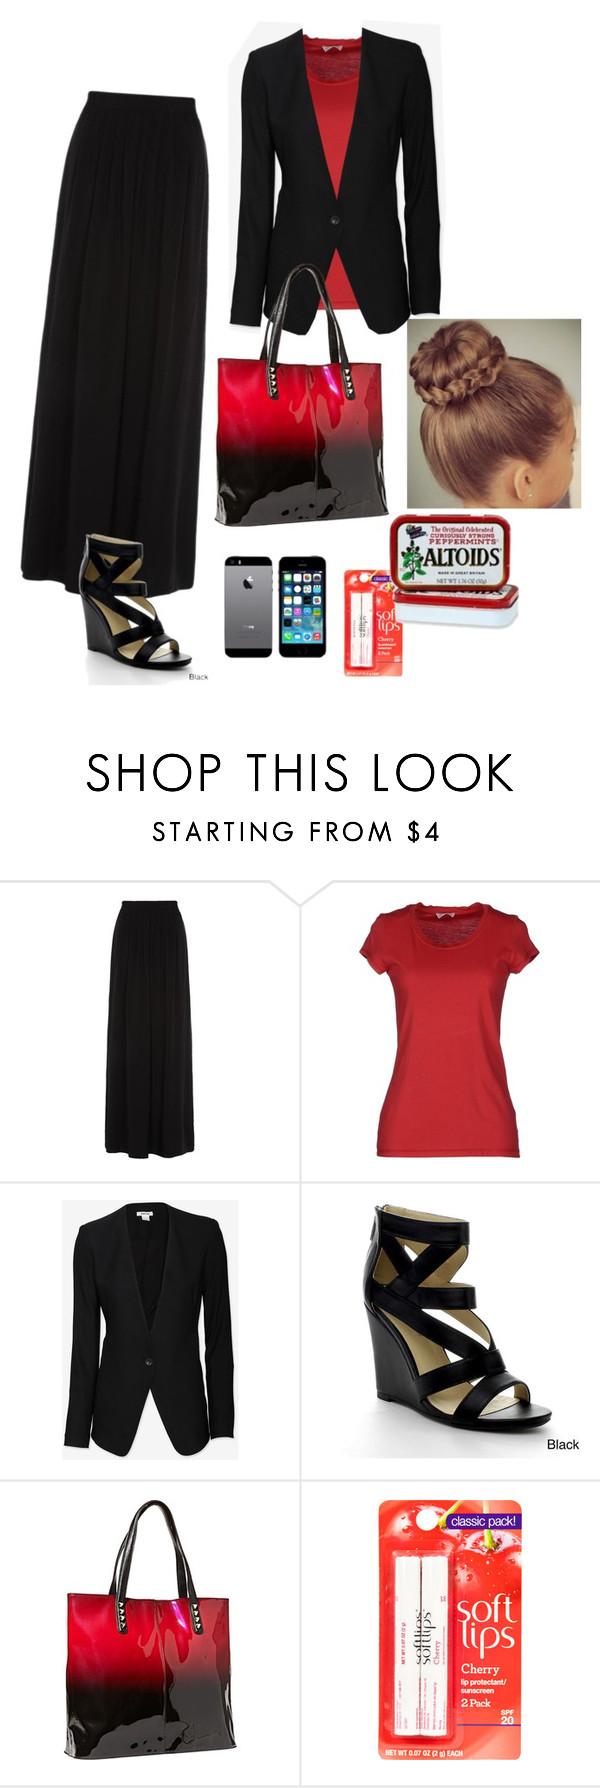 """Sunday Night Service"" by jewelfield ❤ liked on Polyvore featuring Helmut Lang and Betsey Johnson"